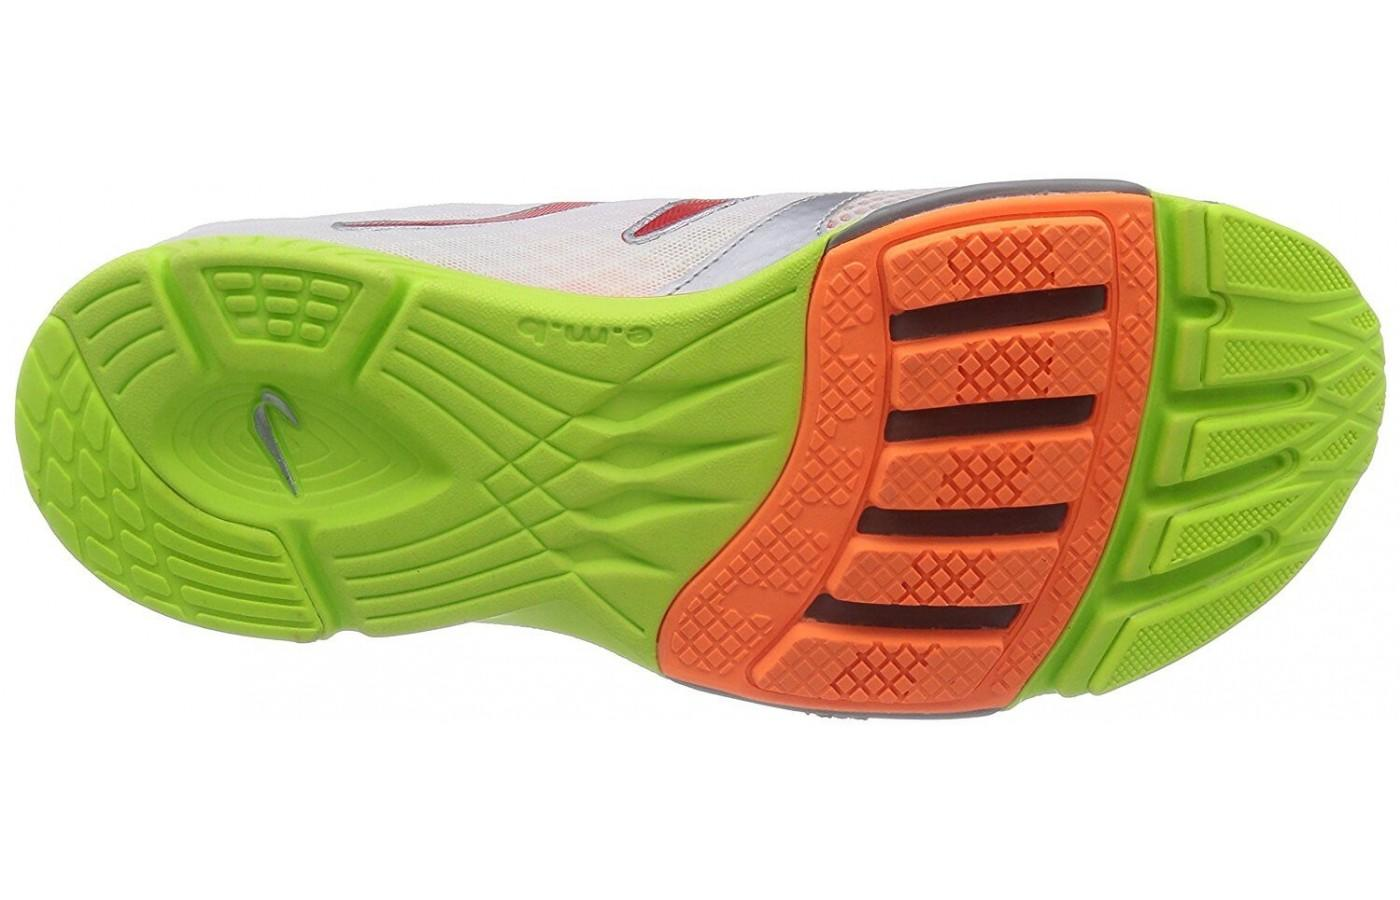 Newton Distance S IV outsole features proprietary lugs